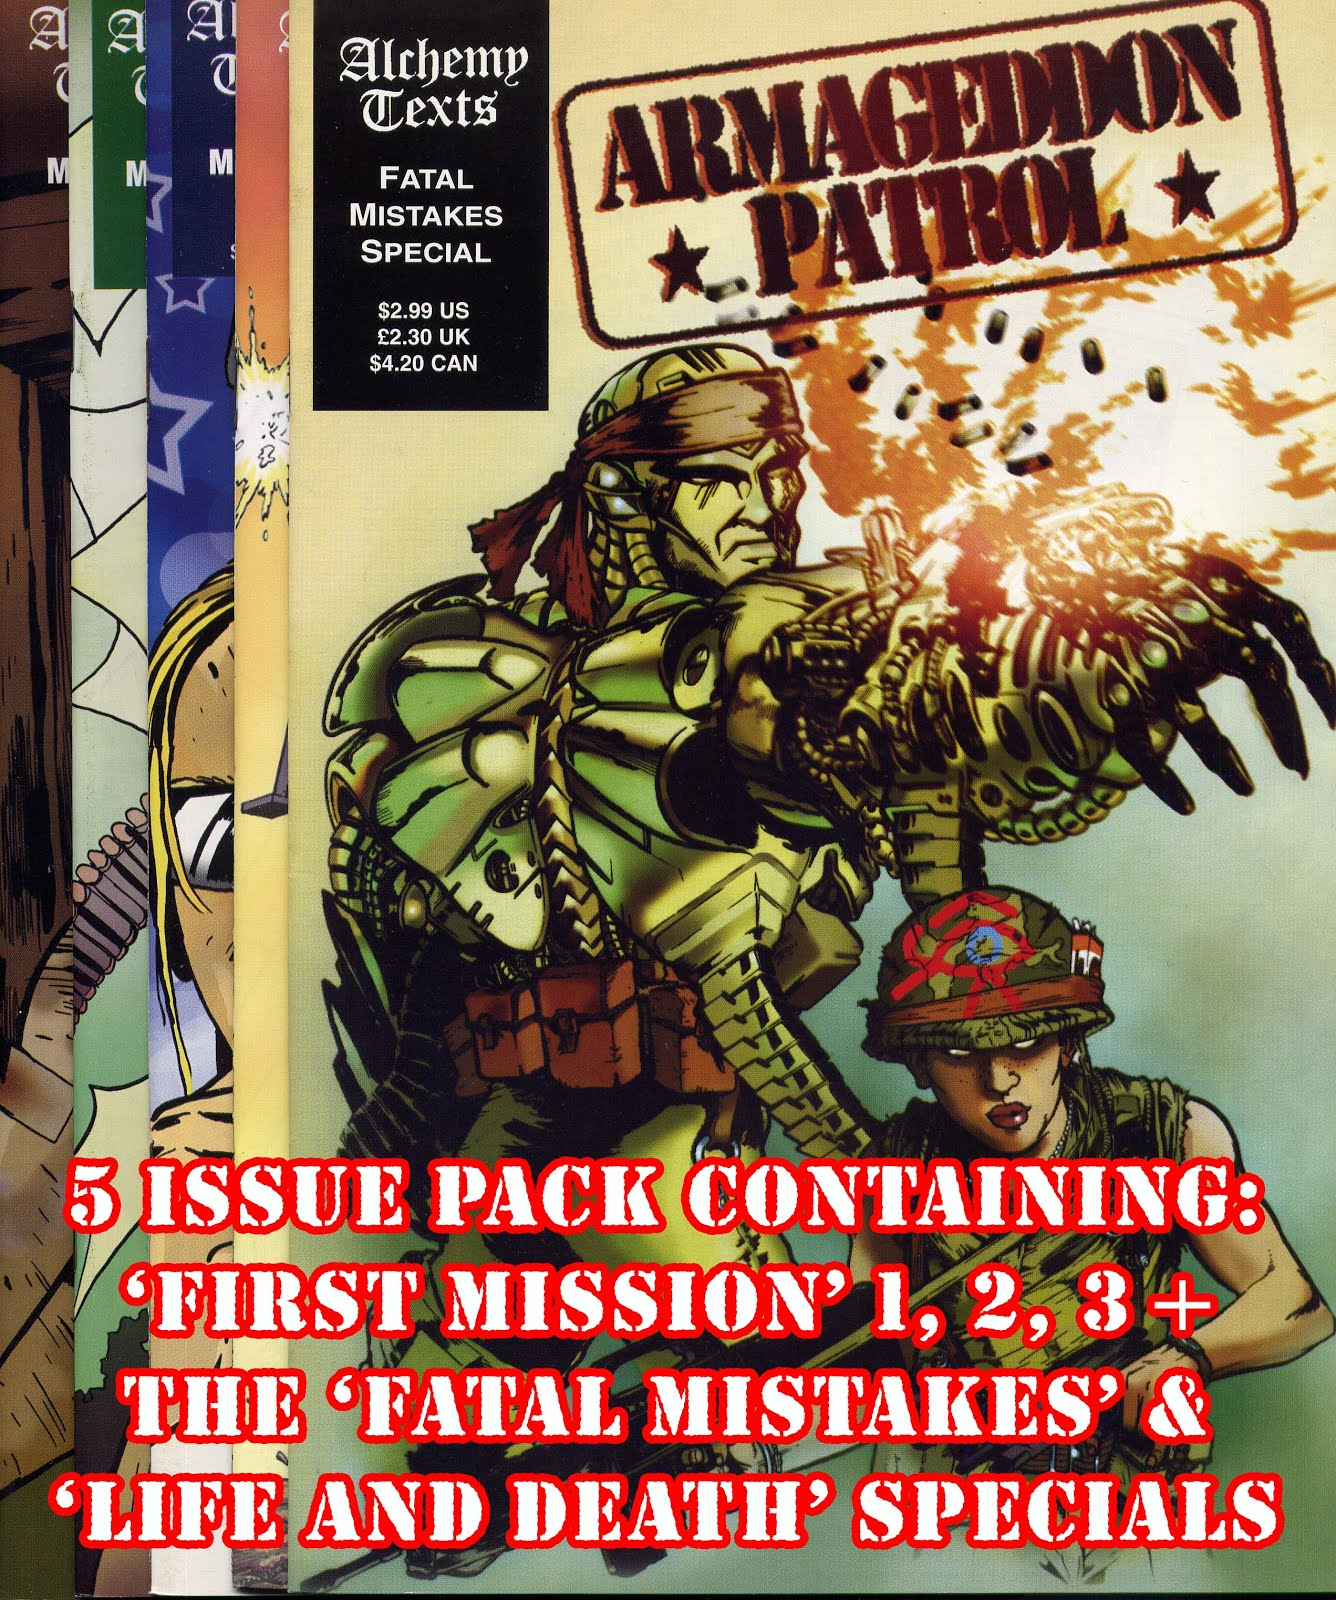 Buy the 'Armageddon Patrol' 5 issue pack below!